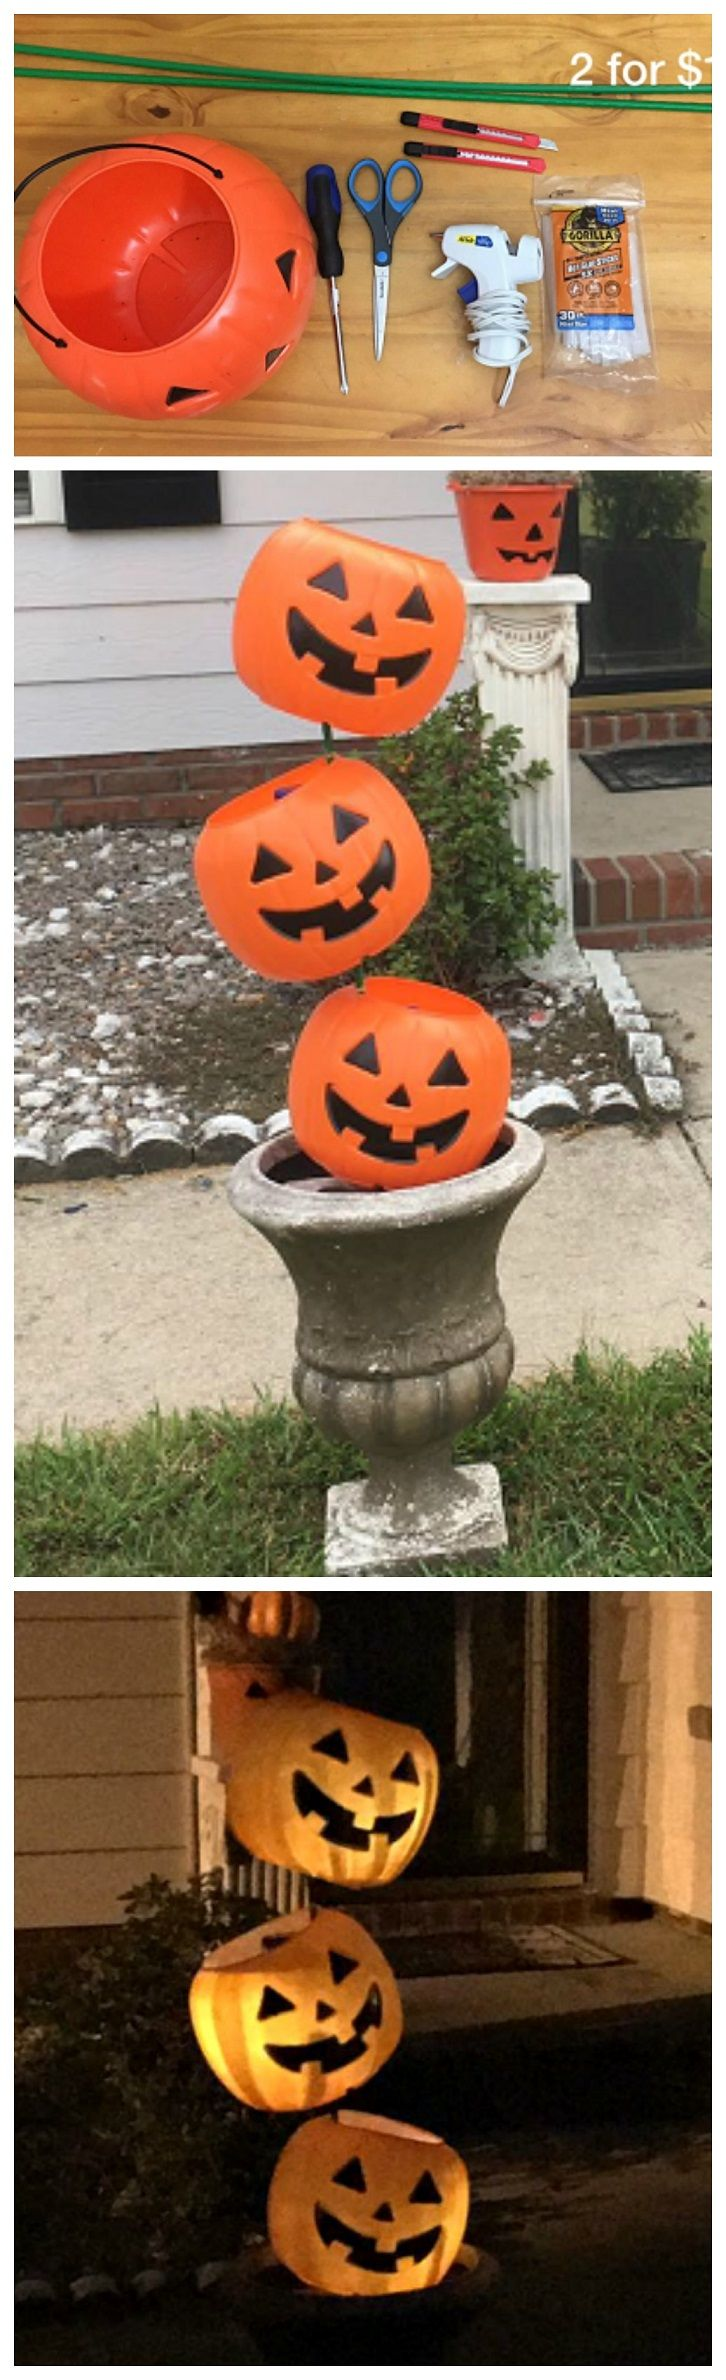 make a plastic pumpkin pail tipsy decoration for halloween such a cheap and easy craft - Halloween Decorations Images